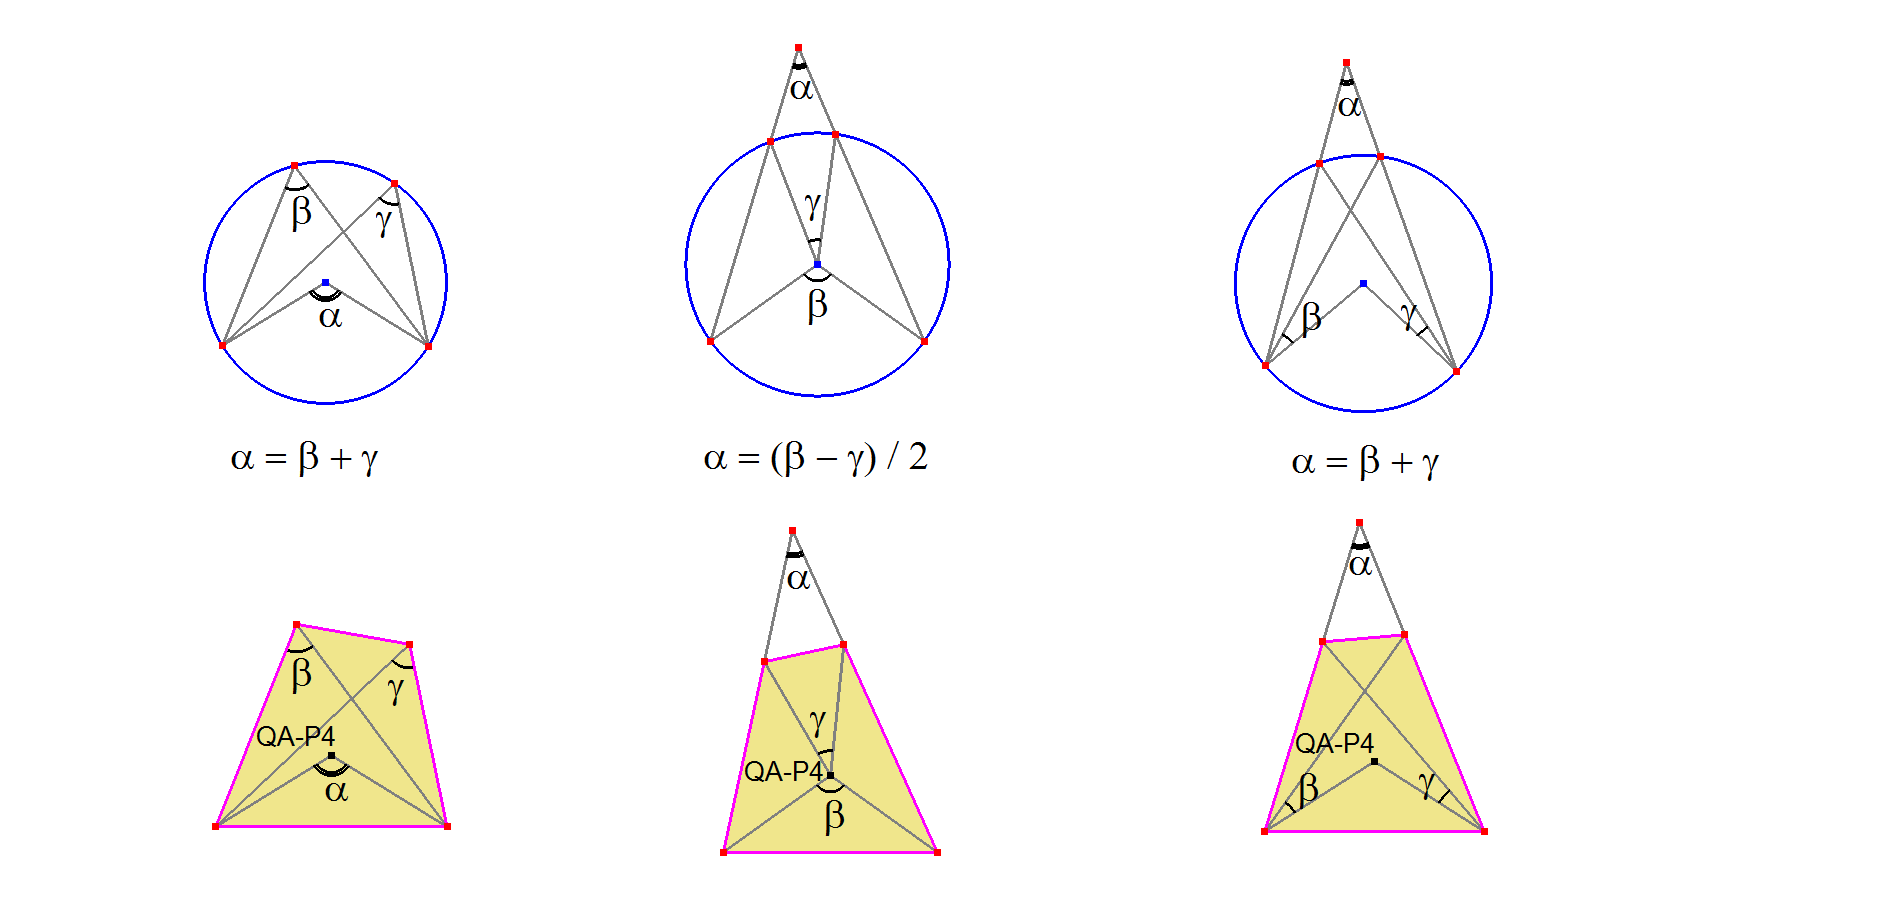 QA-P4-Angles-vs-CircleAngles-03